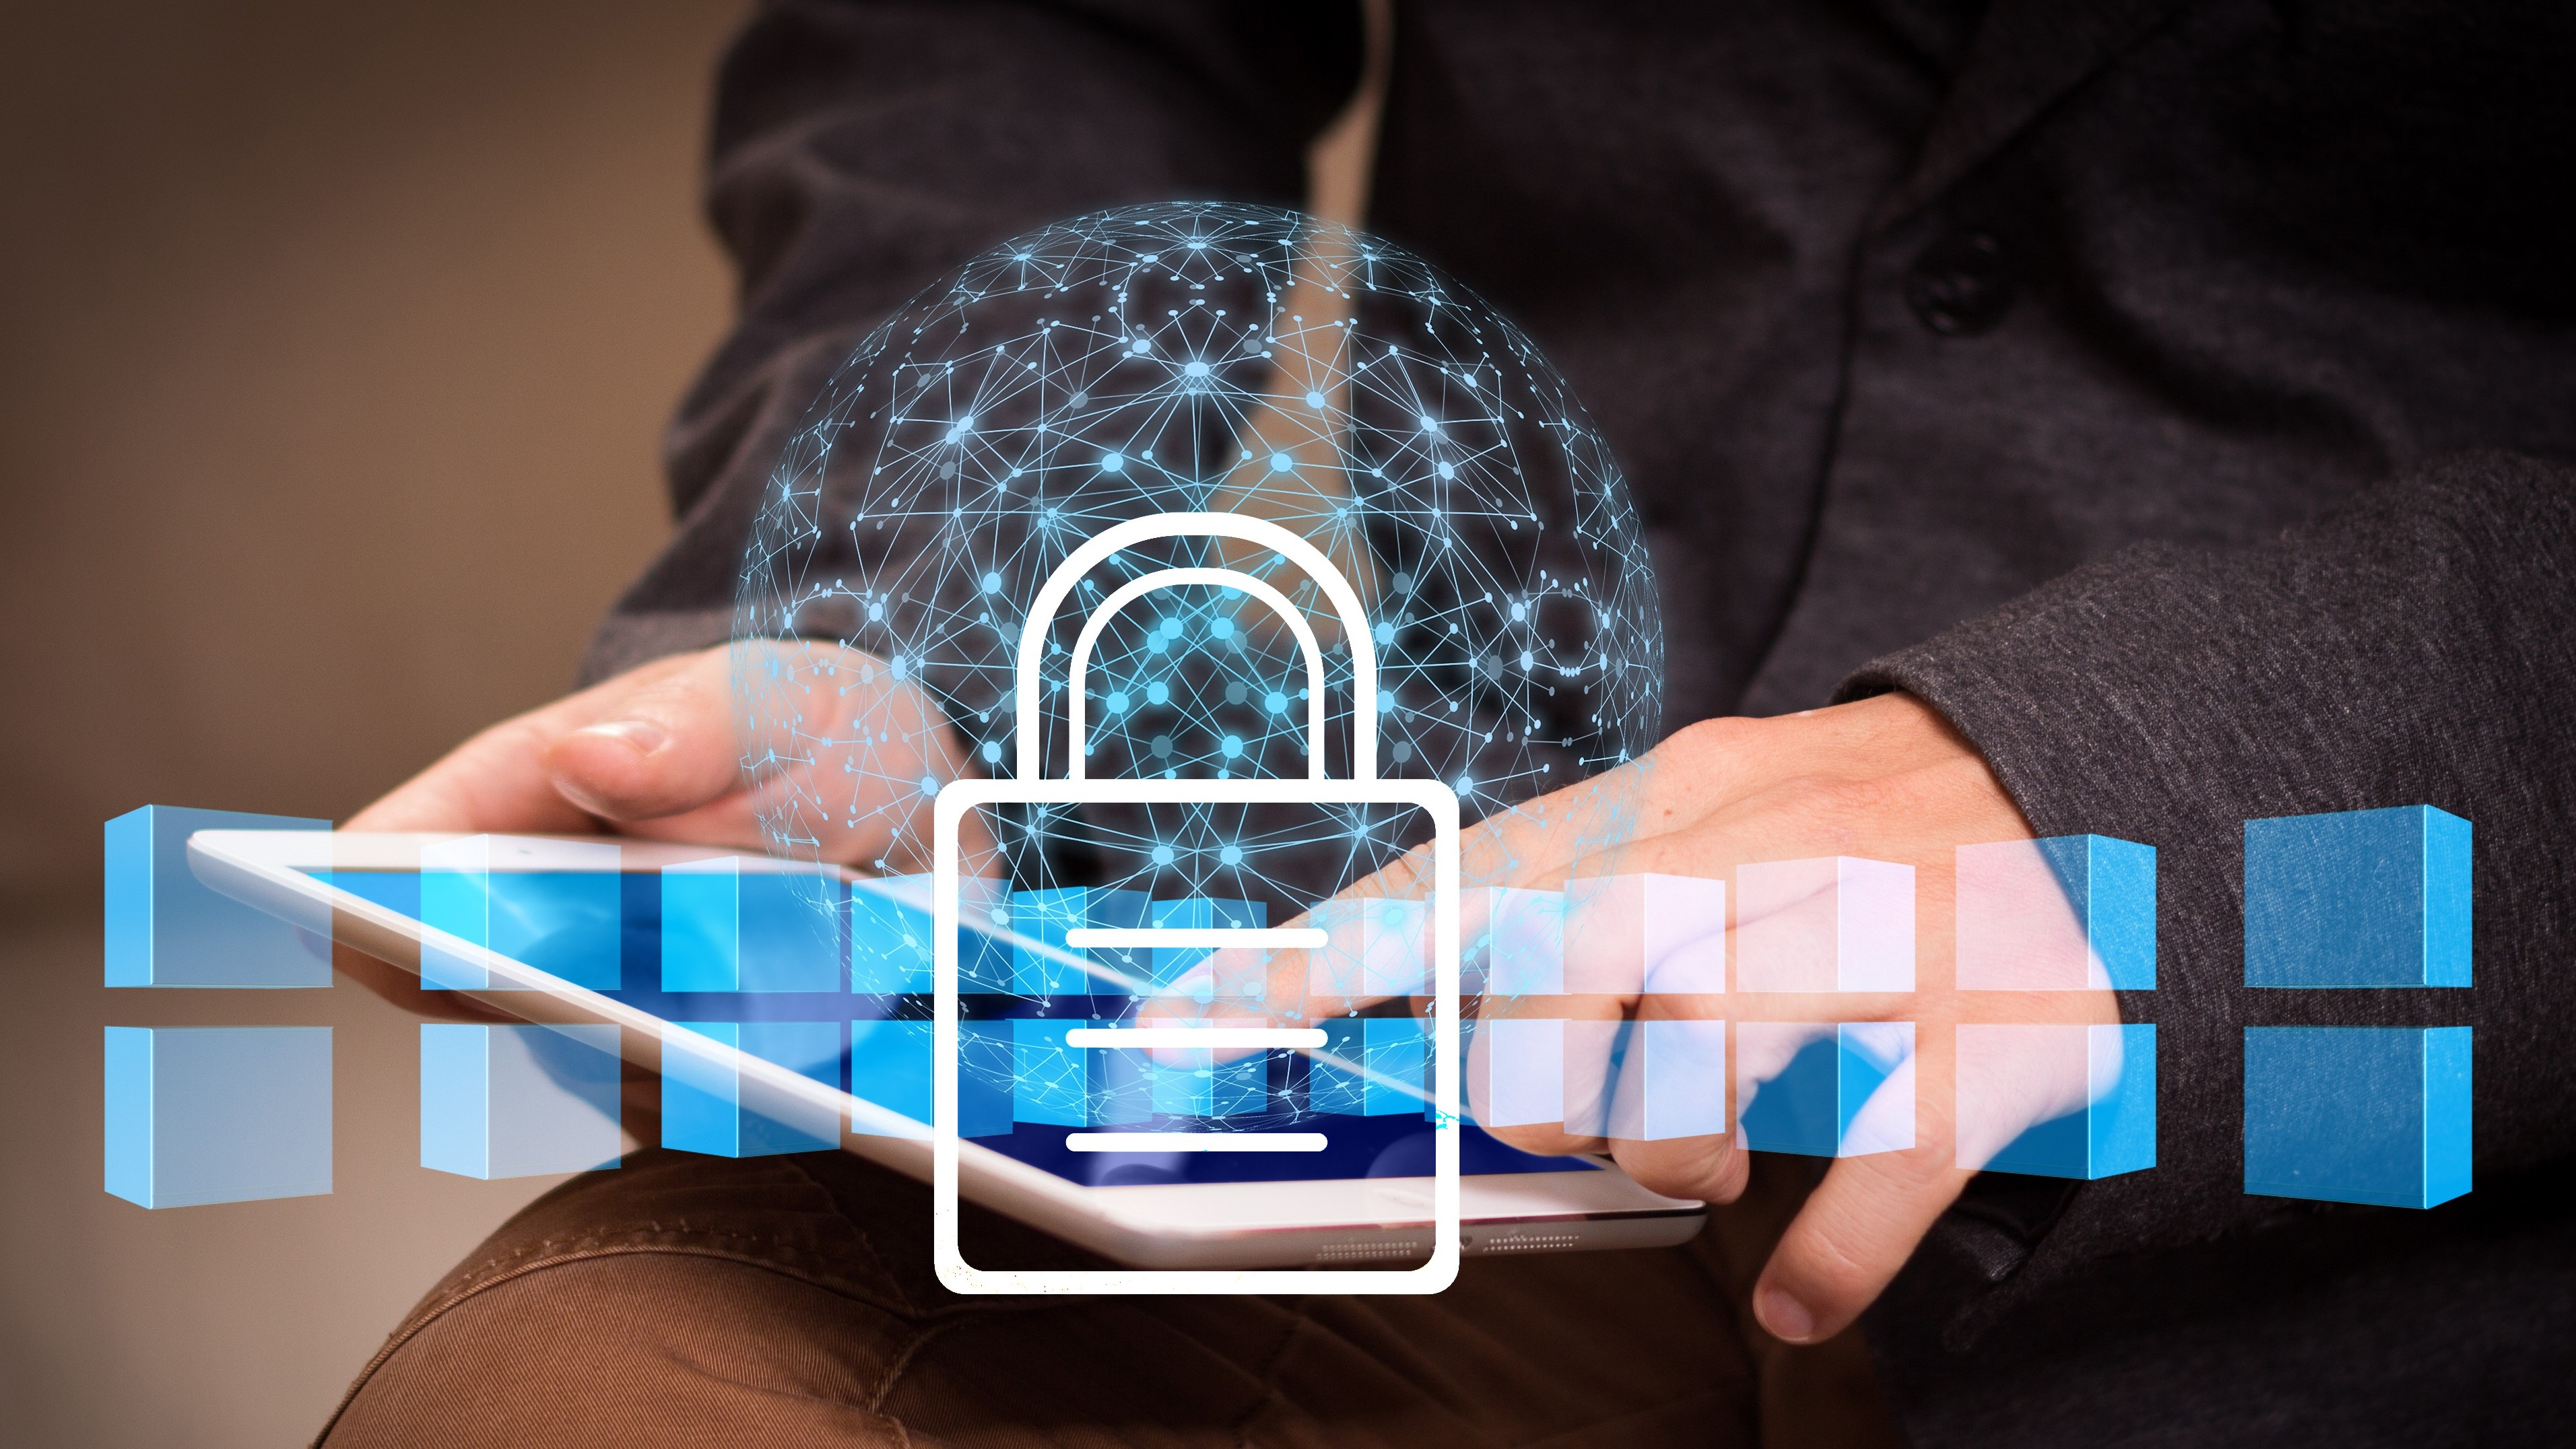 Major security flaws discovered in 4G and 5G   ITProPortal